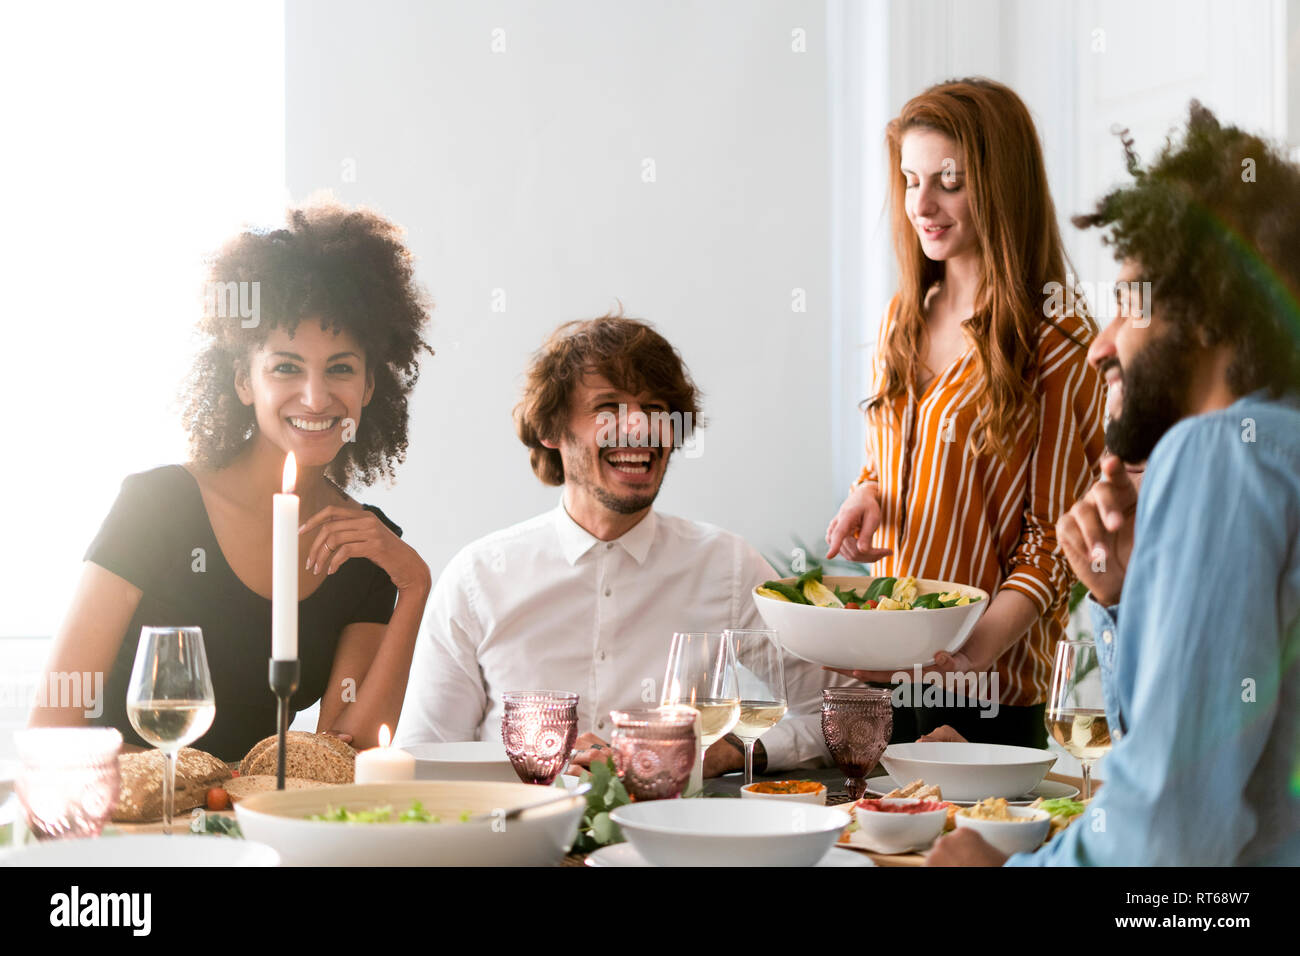 Friends having fun at a dinner party, enjoying eating together Stock Photo